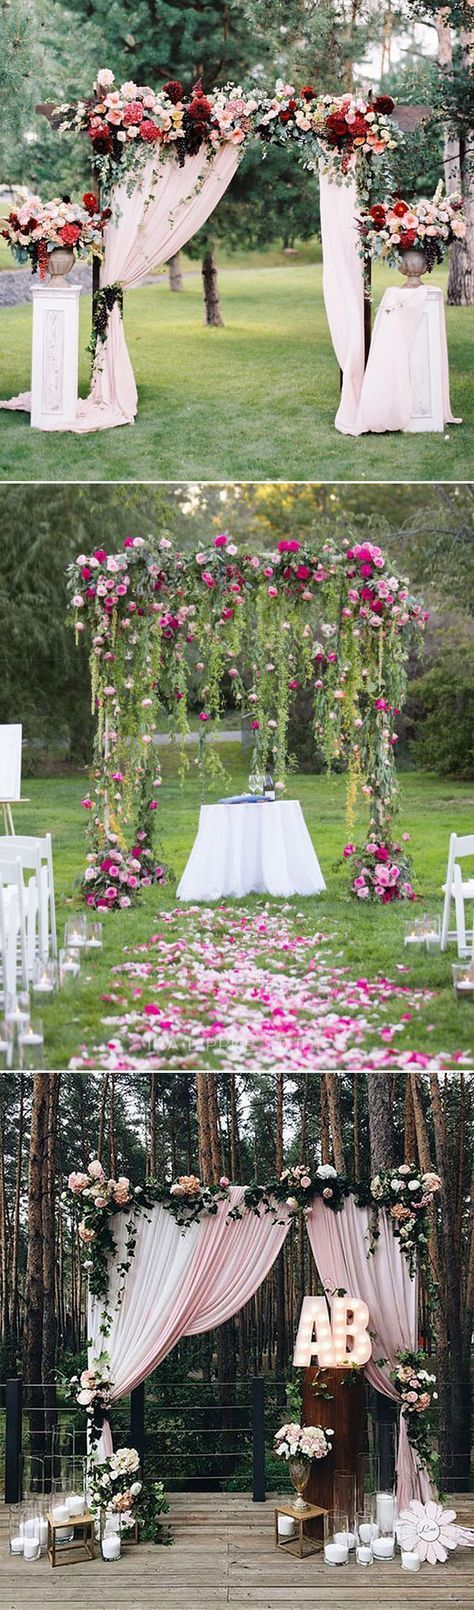 Best 25 Floral arch ideas only on Pinterest Wedding arches